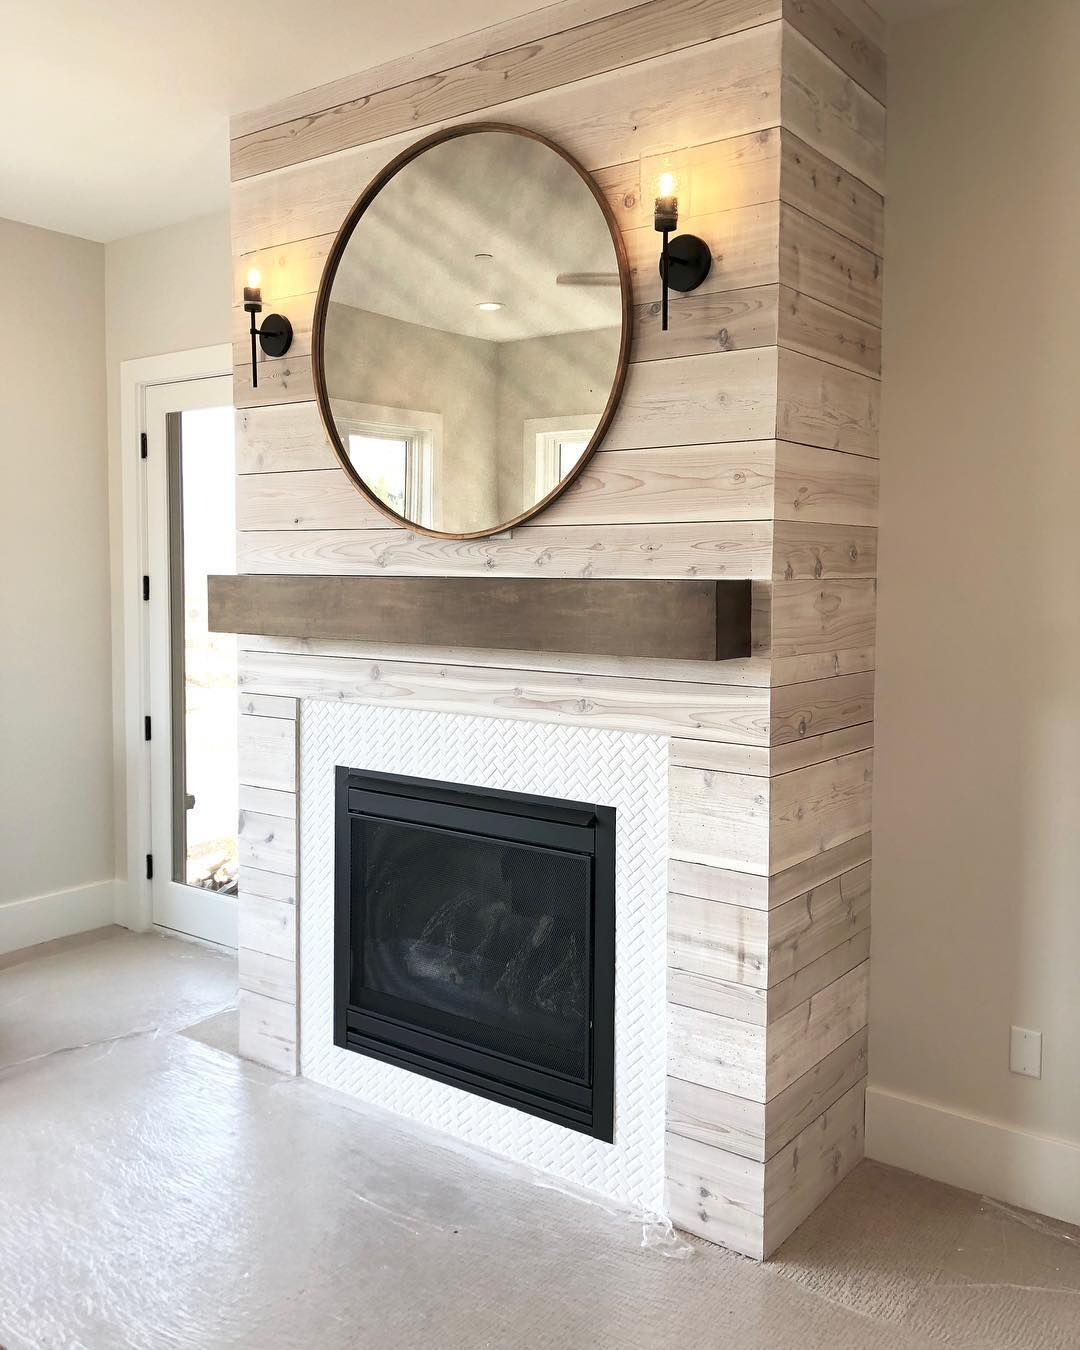 671 9k Followers 595 Following 2 873 Posts See Instagram Photos And Videos From Stitch Fix Stit Herringbone Fireplace Modern Farmhouse Bathroom Fireplace